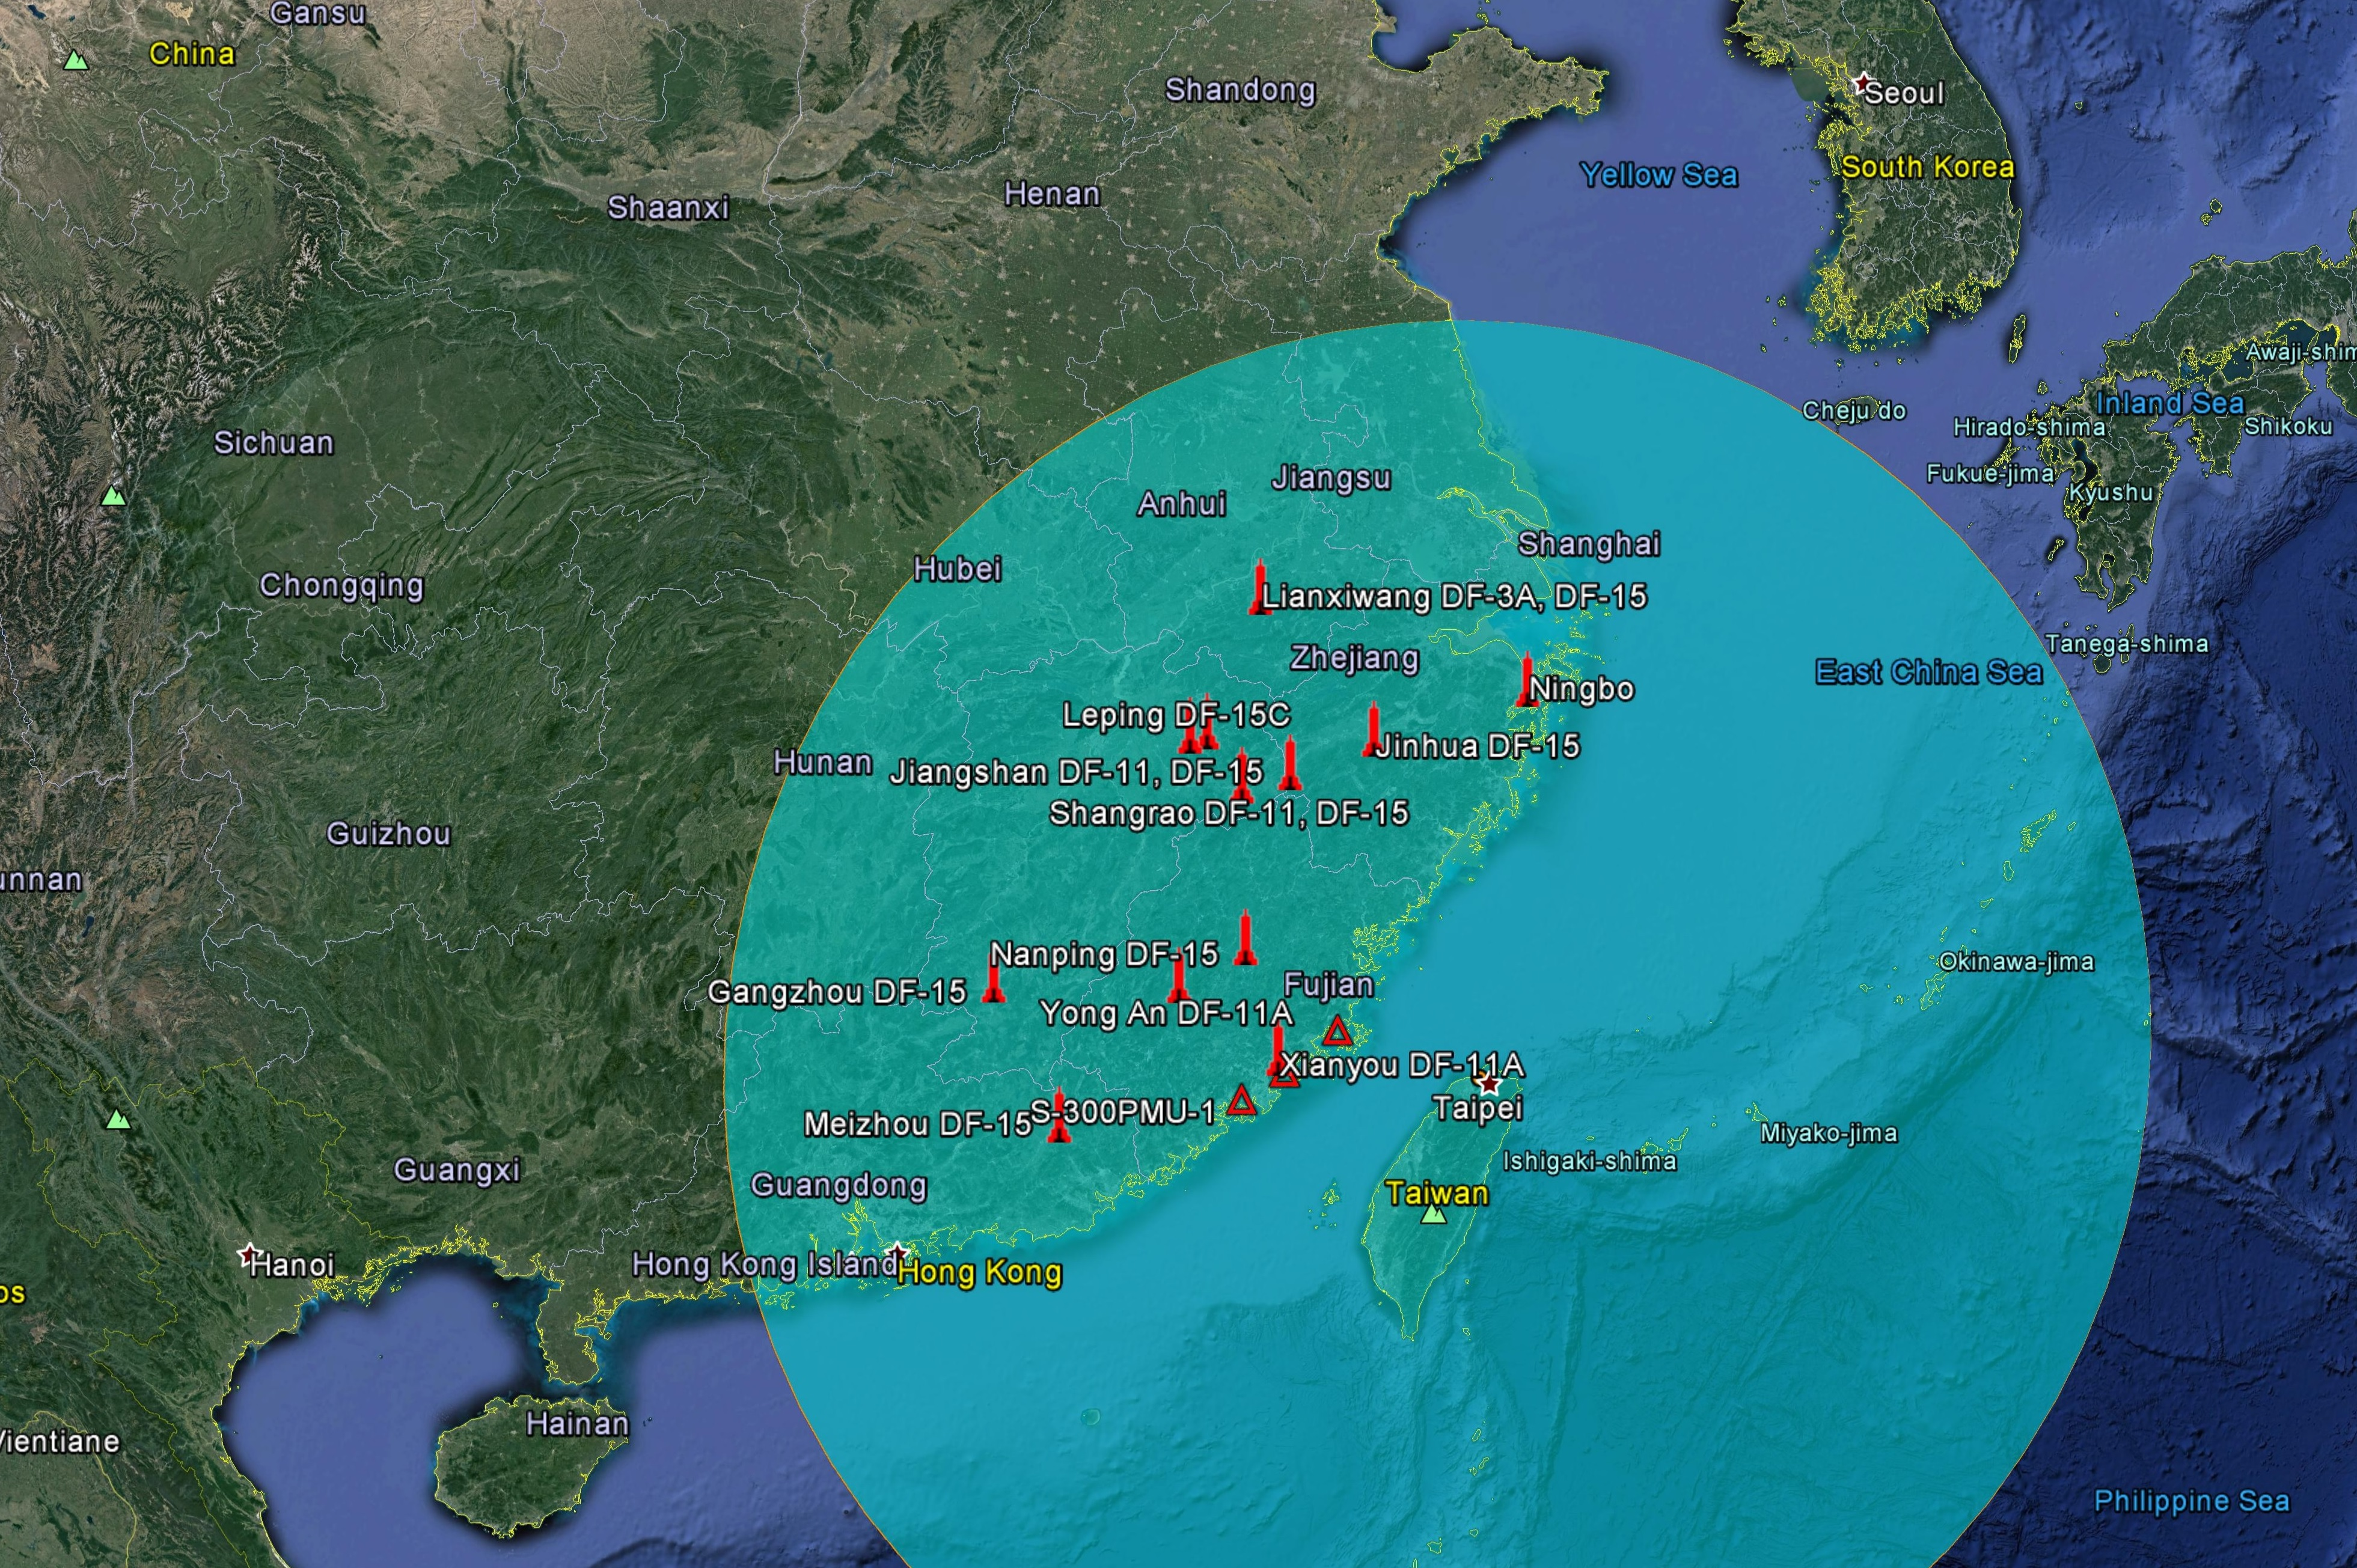 Taiwan's capability to strike back at China using its cruise missiles is a crucial part of Taiwan's deterrence against aggression, said experts. The reported range of Taiwan's cruise missiles is far enough to attack many sites where China has deployed ballistic missiles that target against Taiwan.